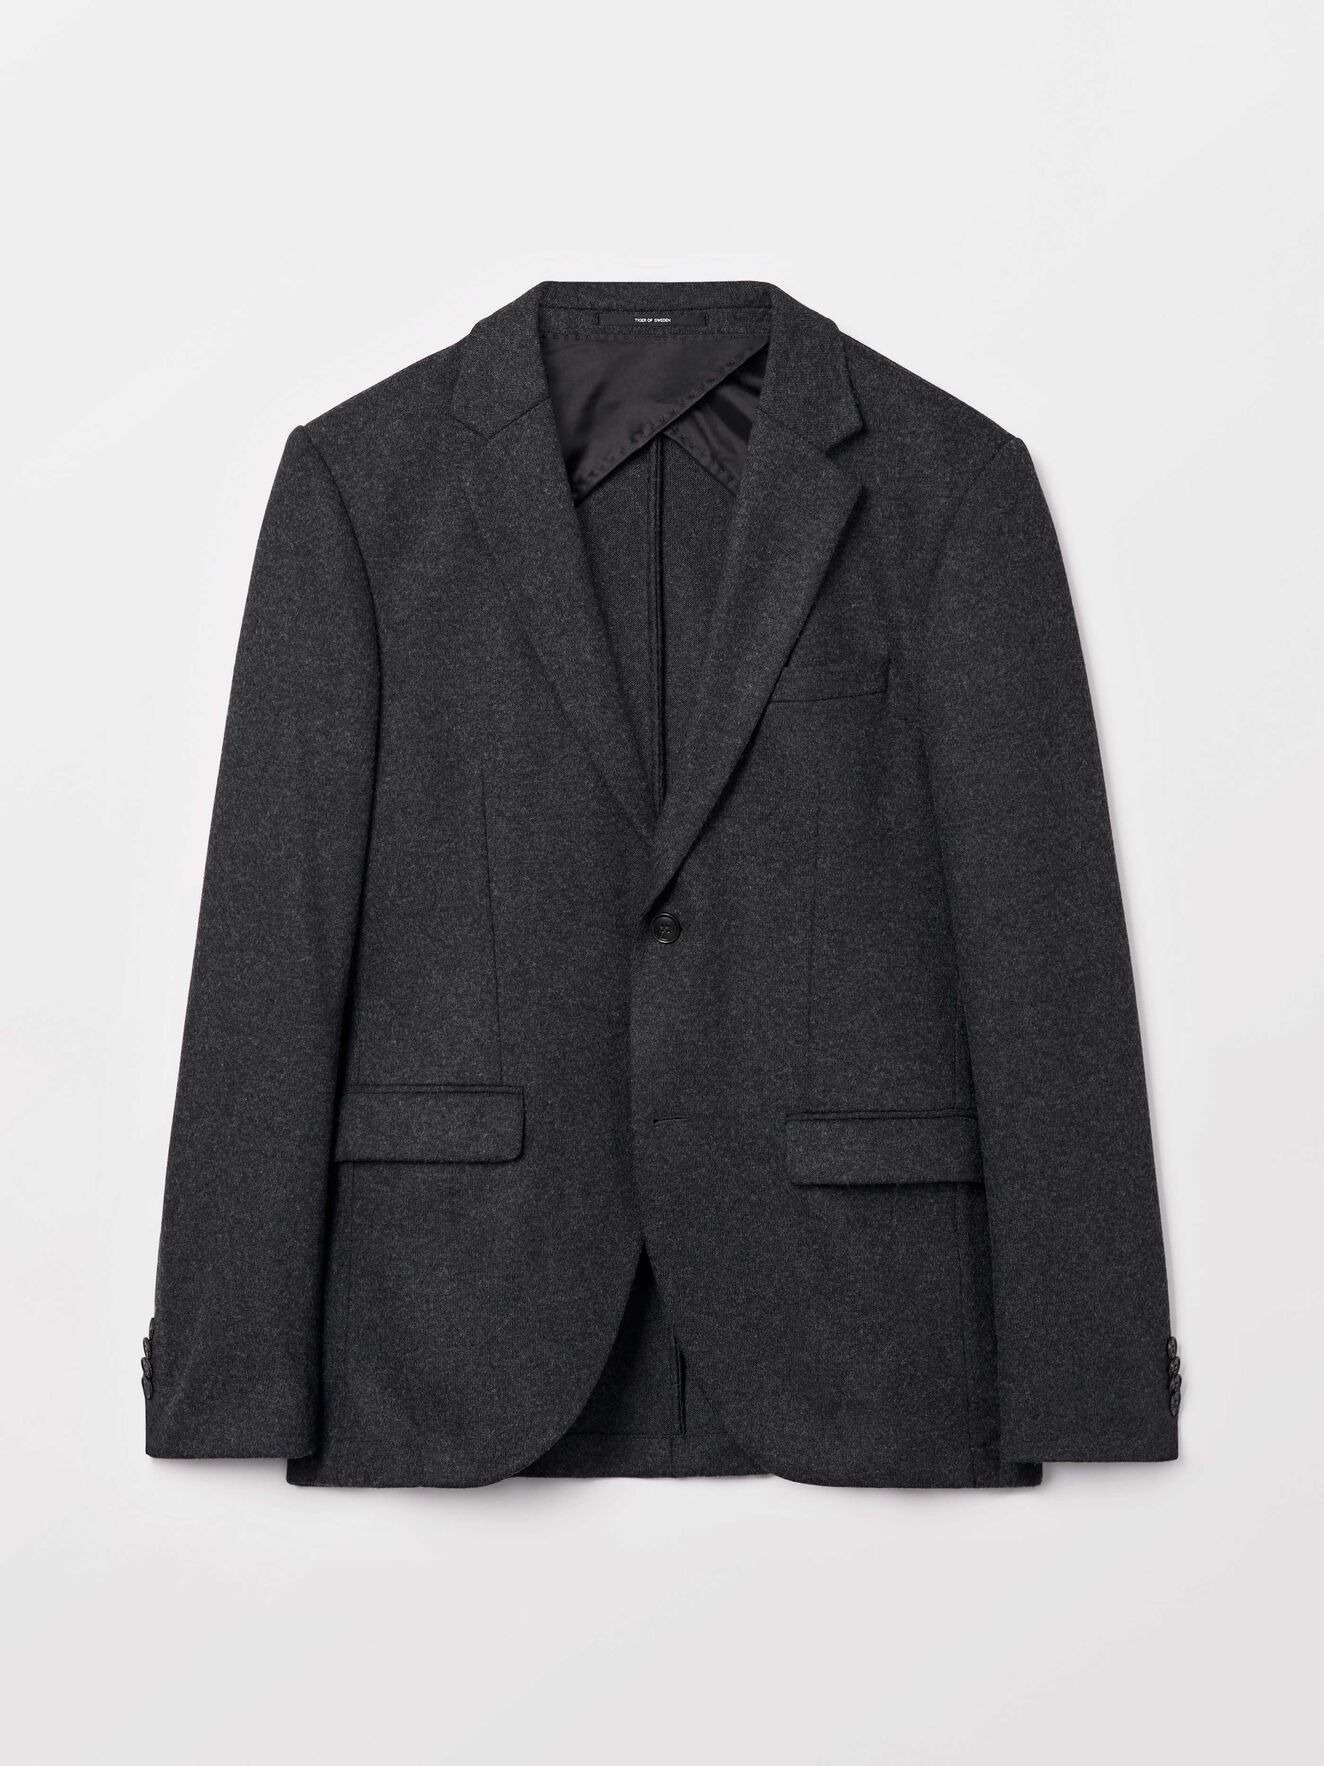 Jamonte Hl Blazer in Med Grey Mel from Tiger of Sweden